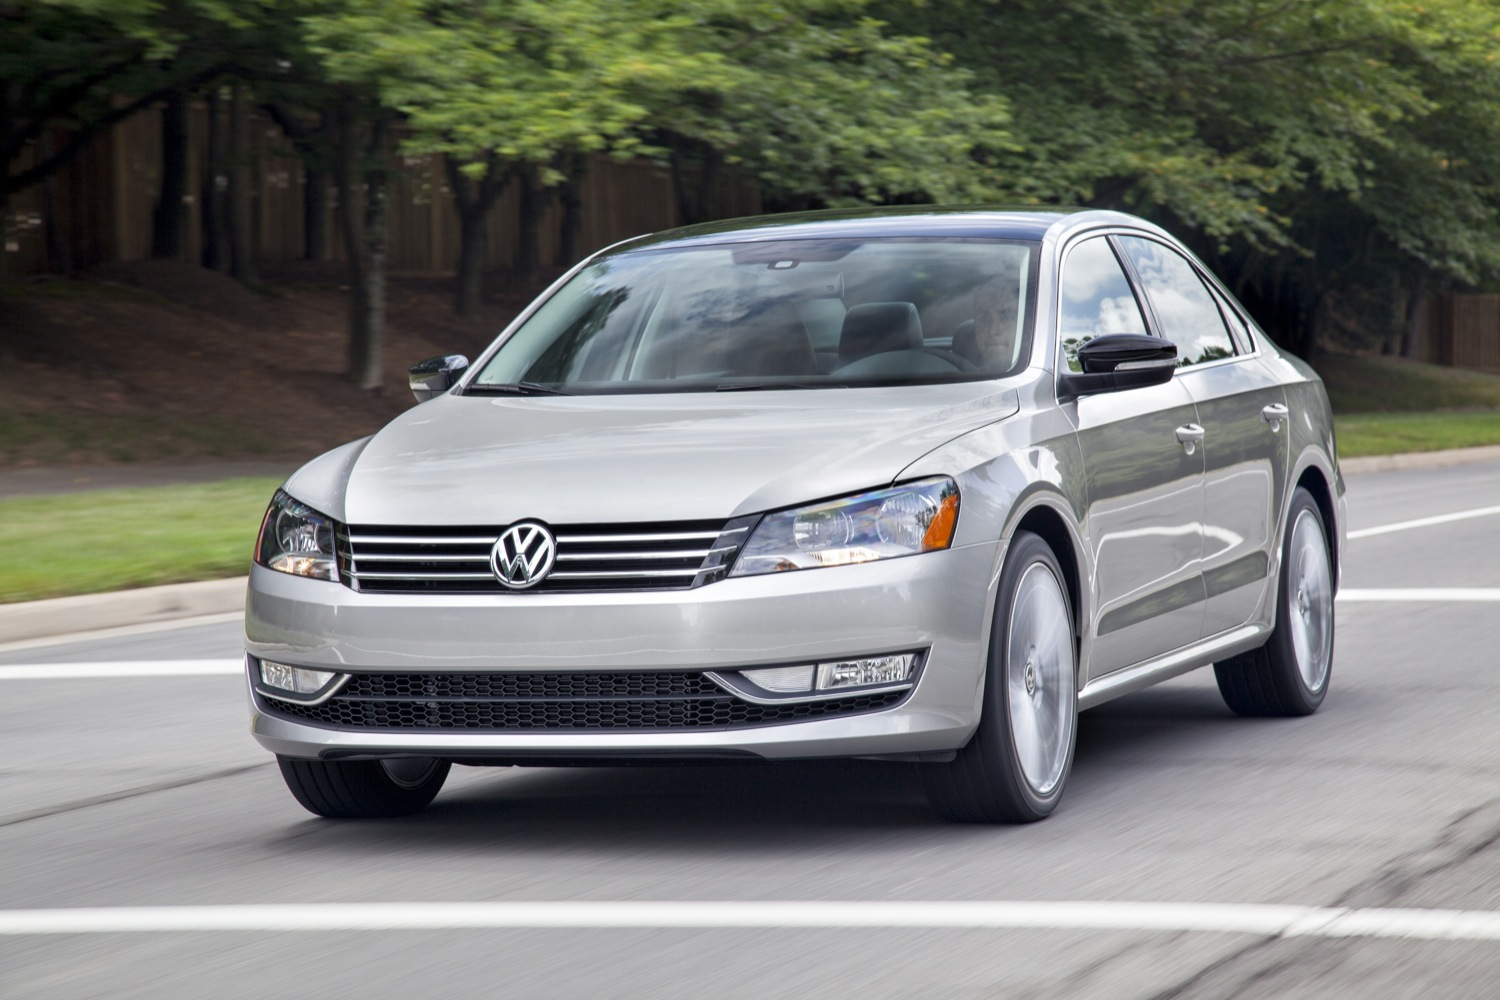 volkswagen announces 2014 passat sport at detroit. Black Bedroom Furniture Sets. Home Design Ideas